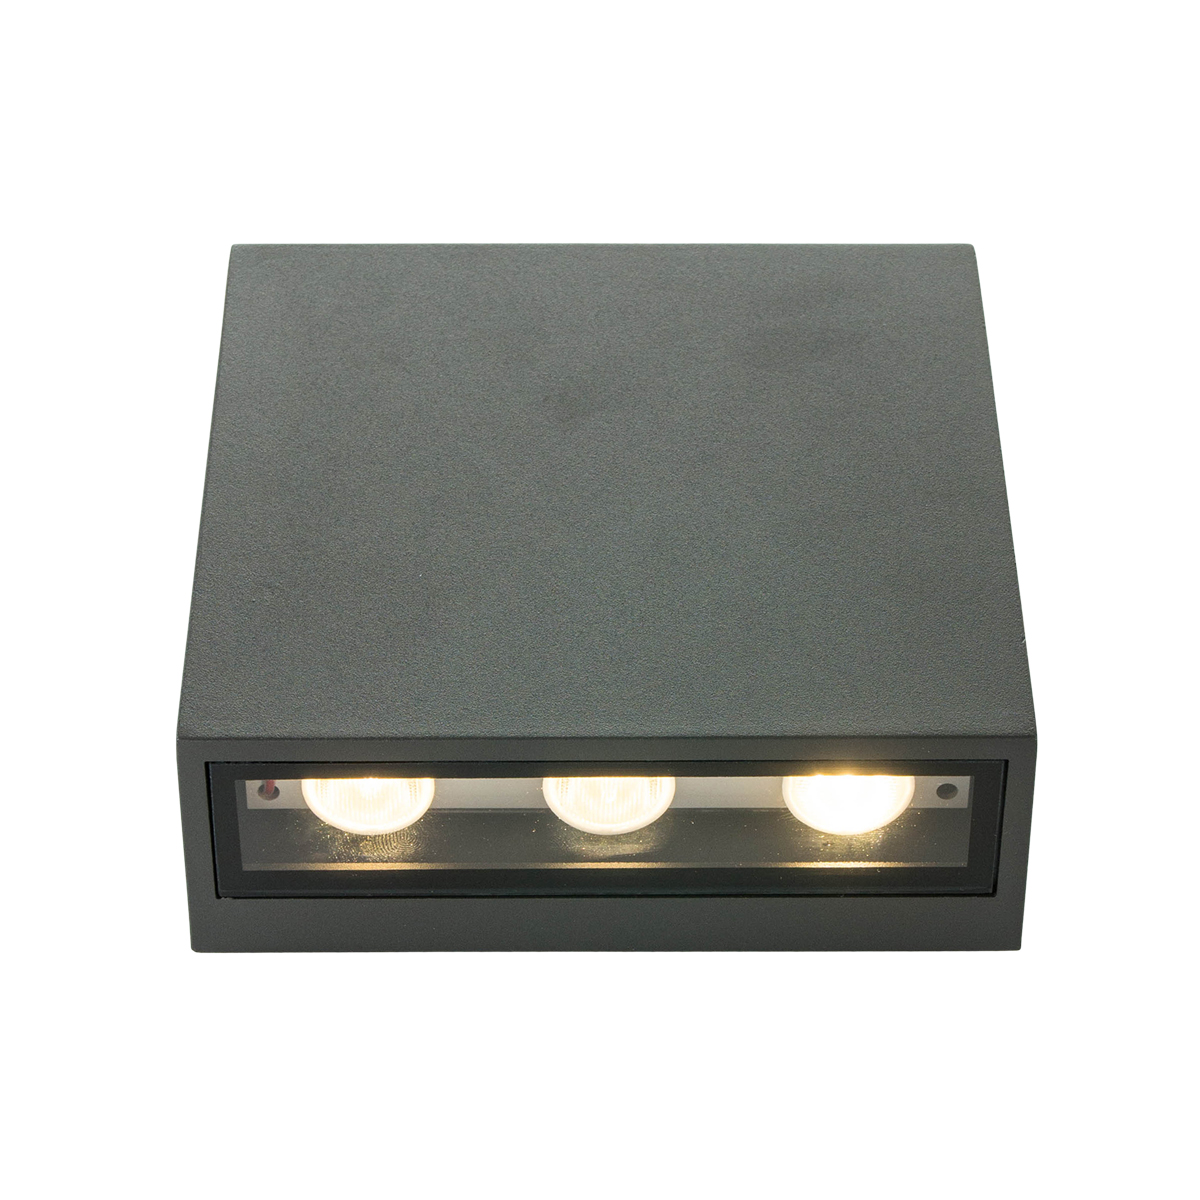 Buitenlamp Led Buitenlamp Led Antraciet Belgrado